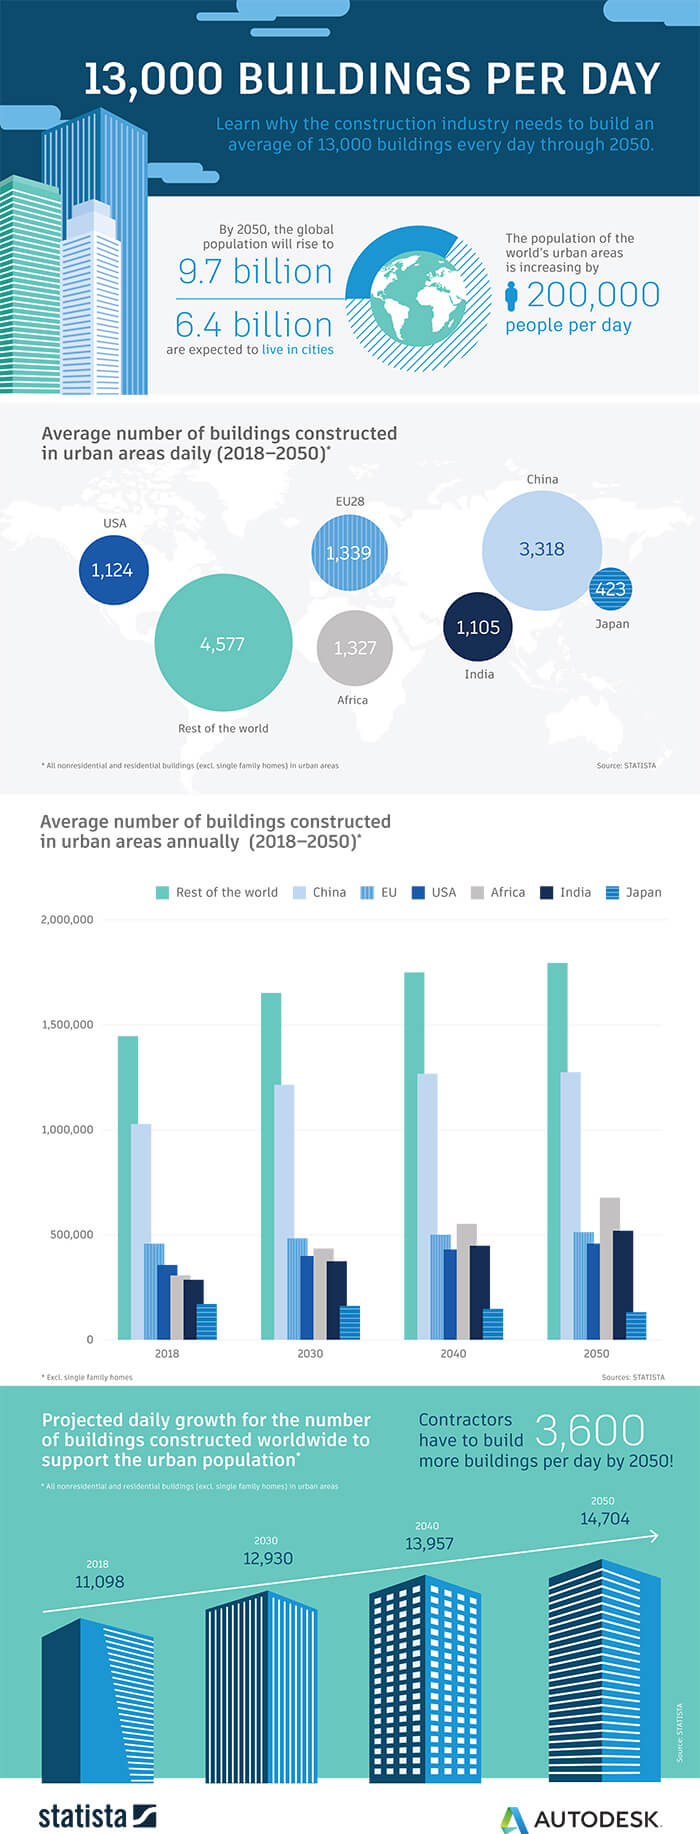 13,000 buildings per day